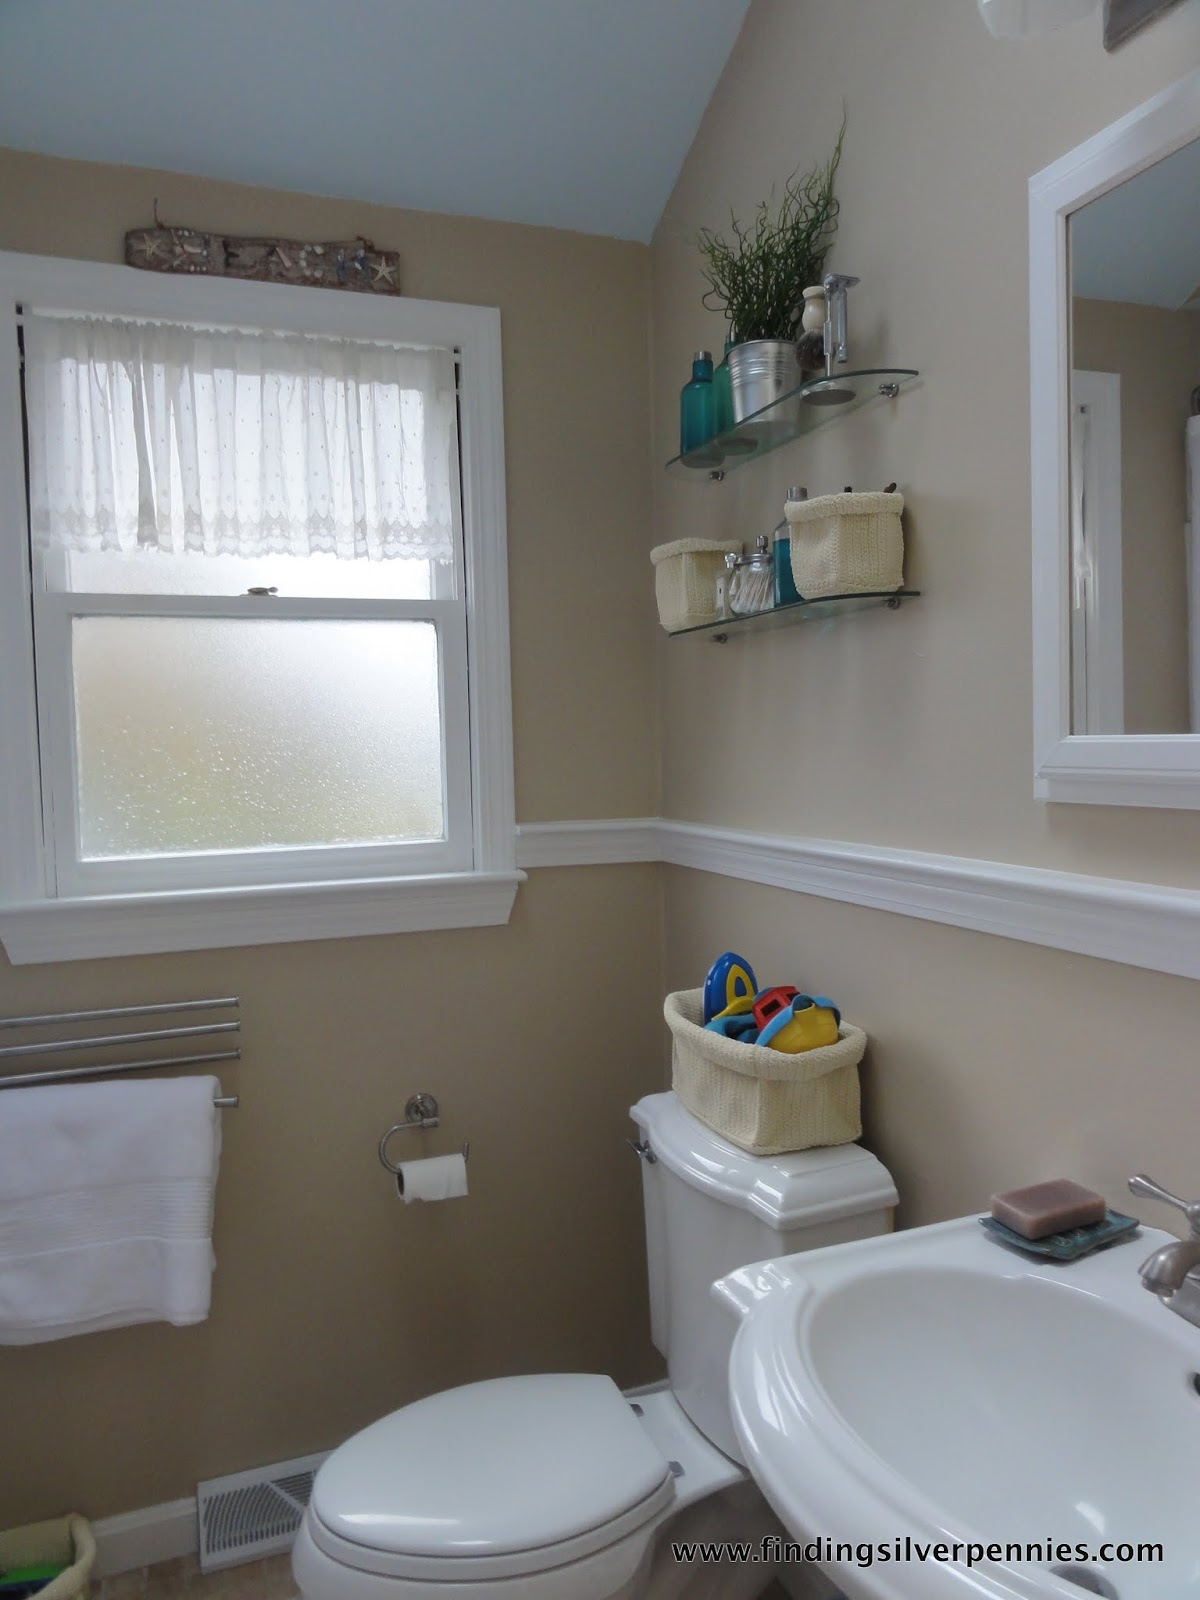 Bathroom Makeover Contest it's the little things (bathroom makeover) - finding silver pennies